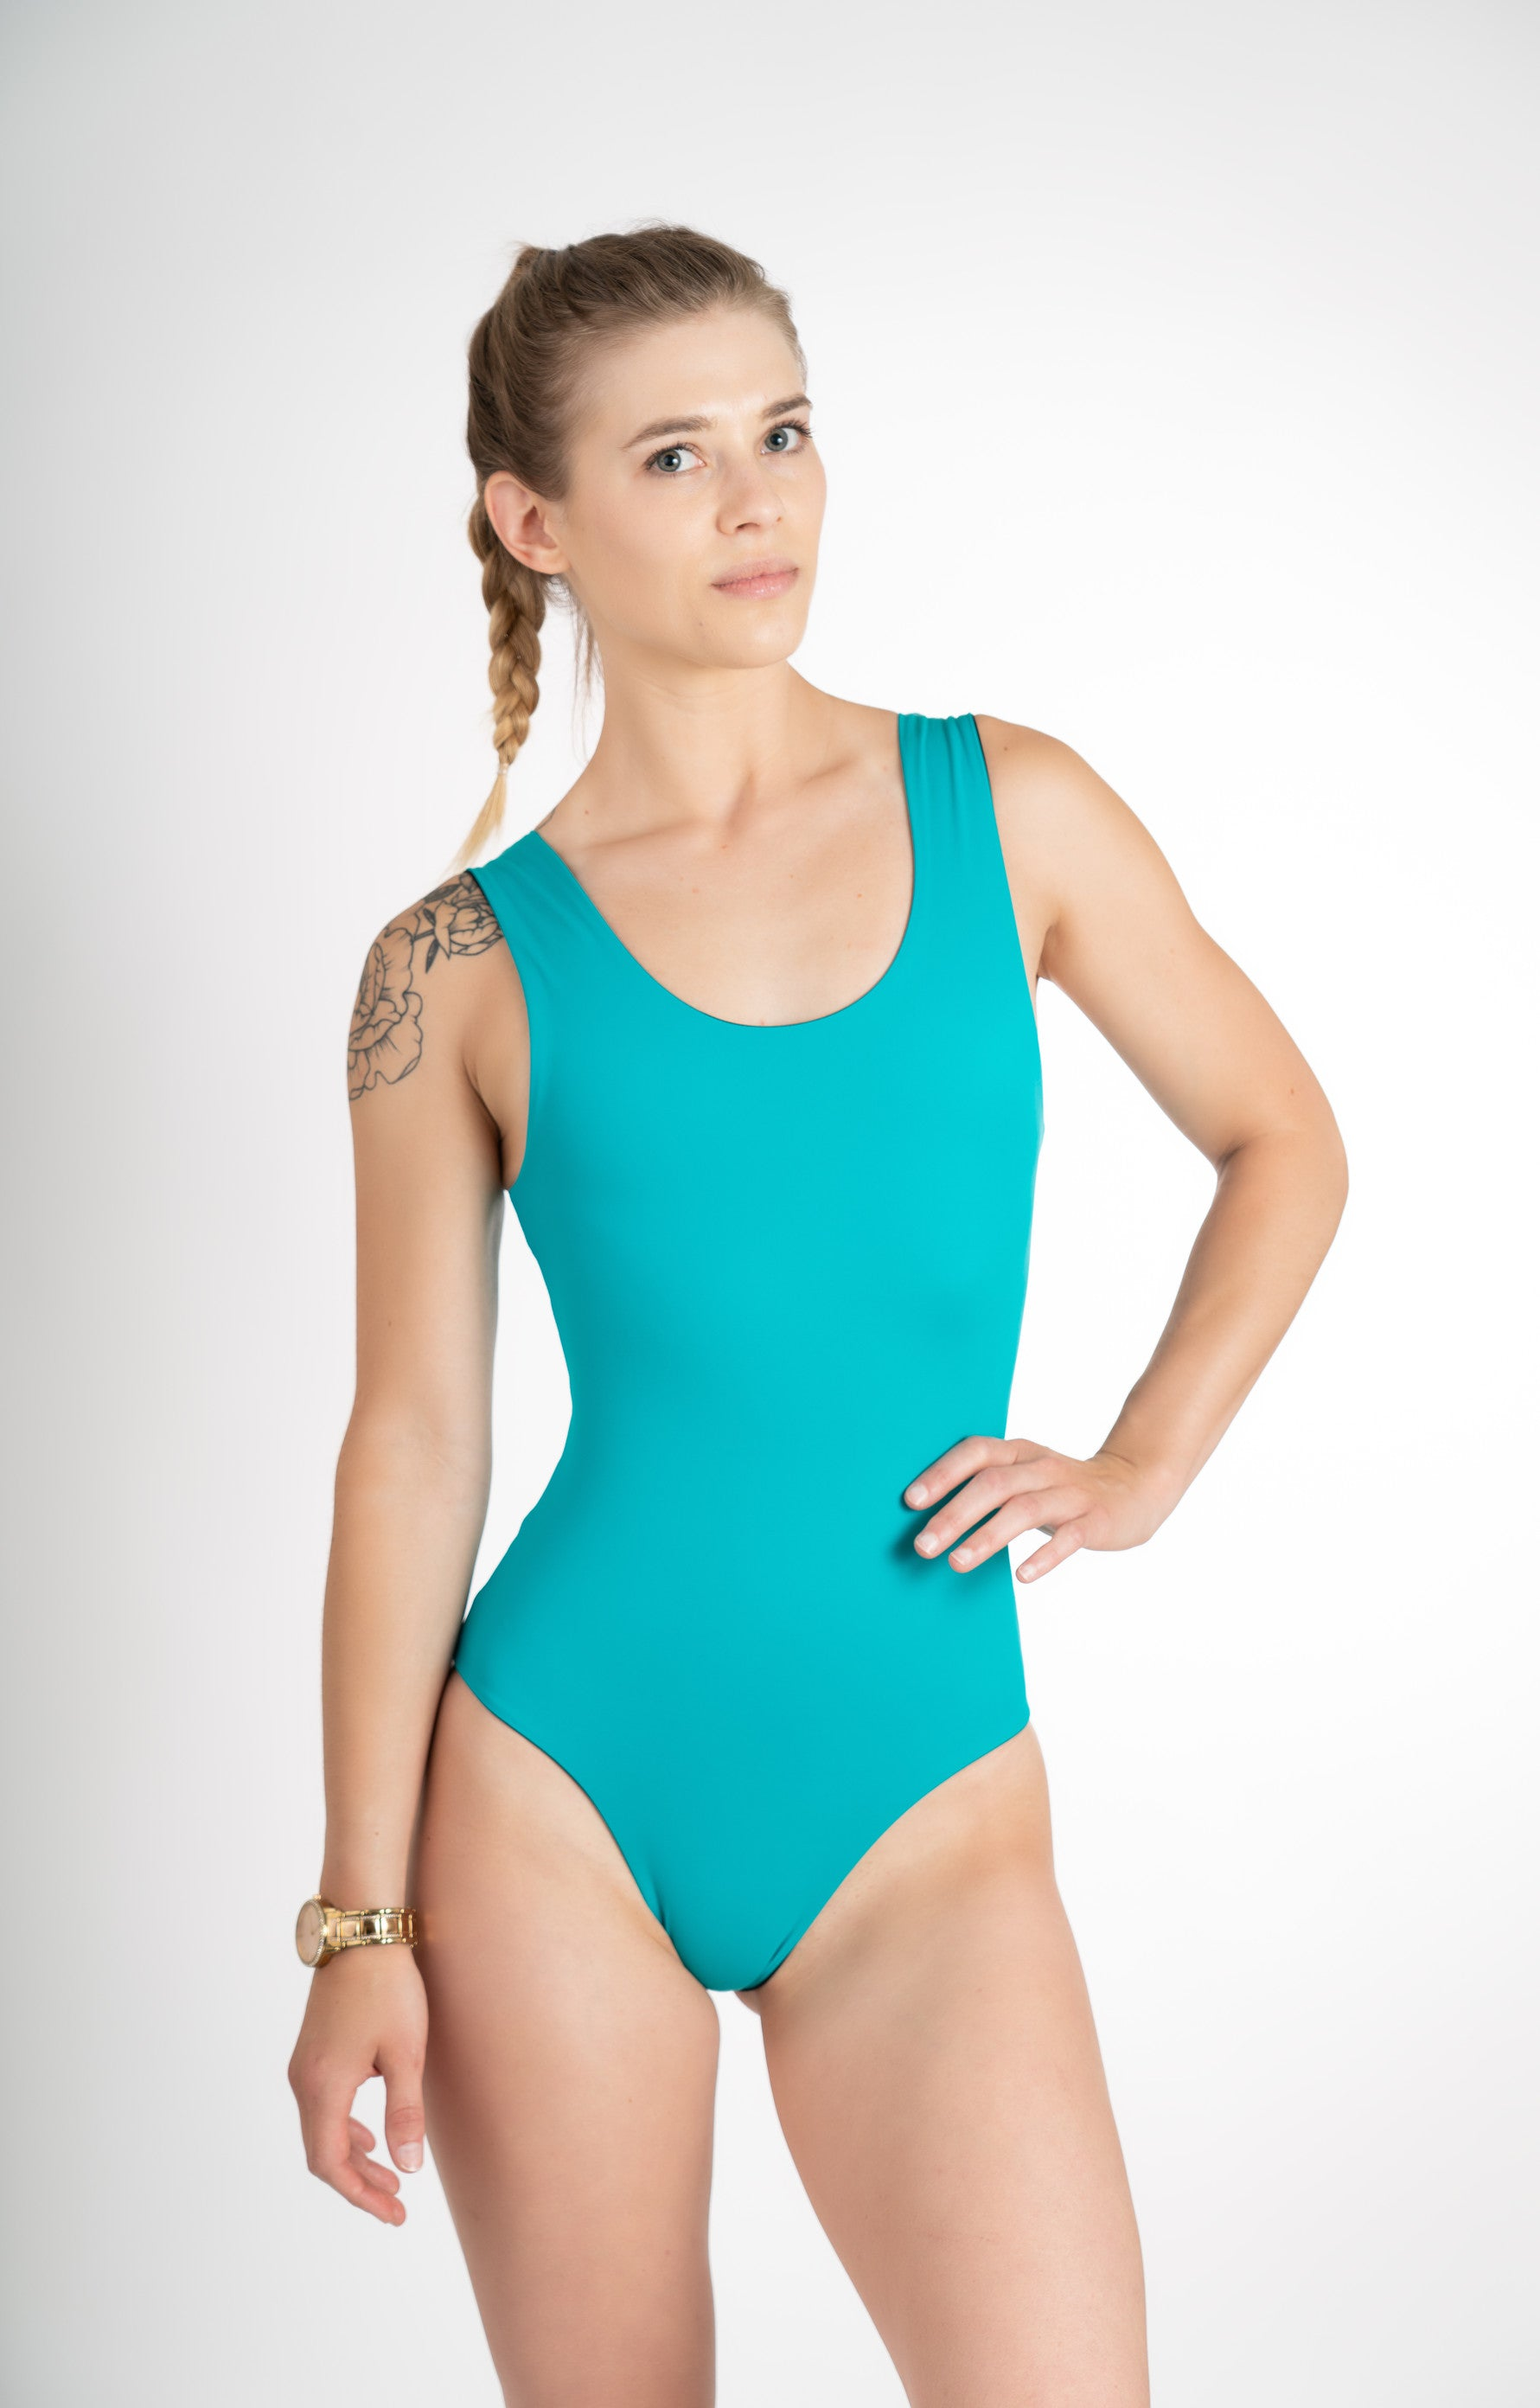 classic handmade sustainable one piece bathing suit